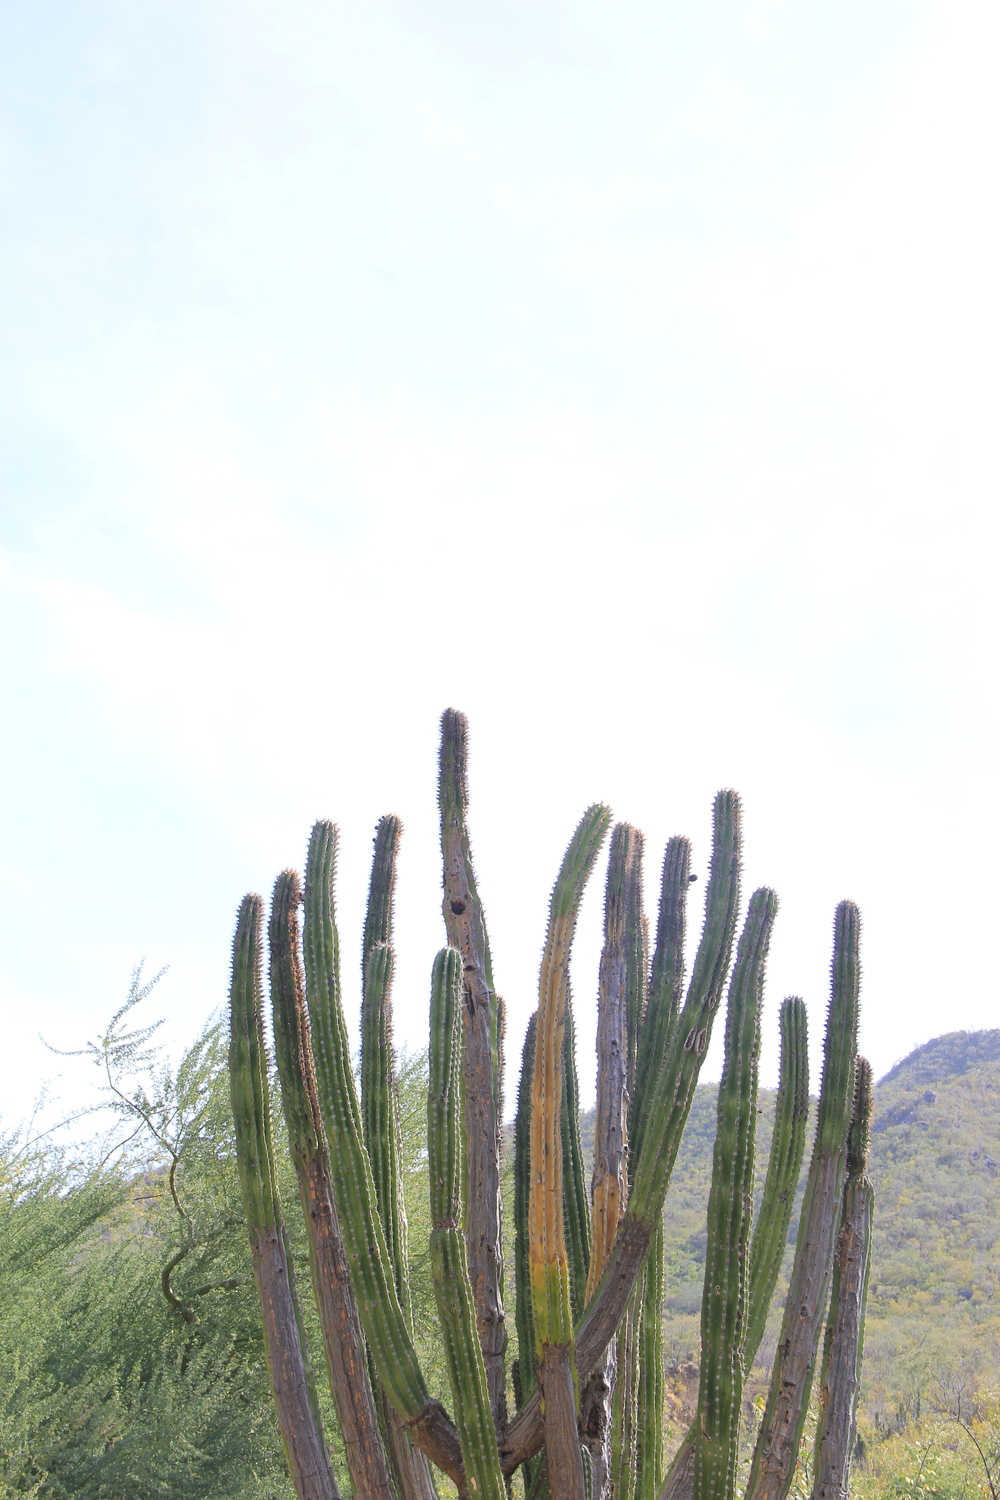 Cardon Cactus along the backroads of Baja California Sur